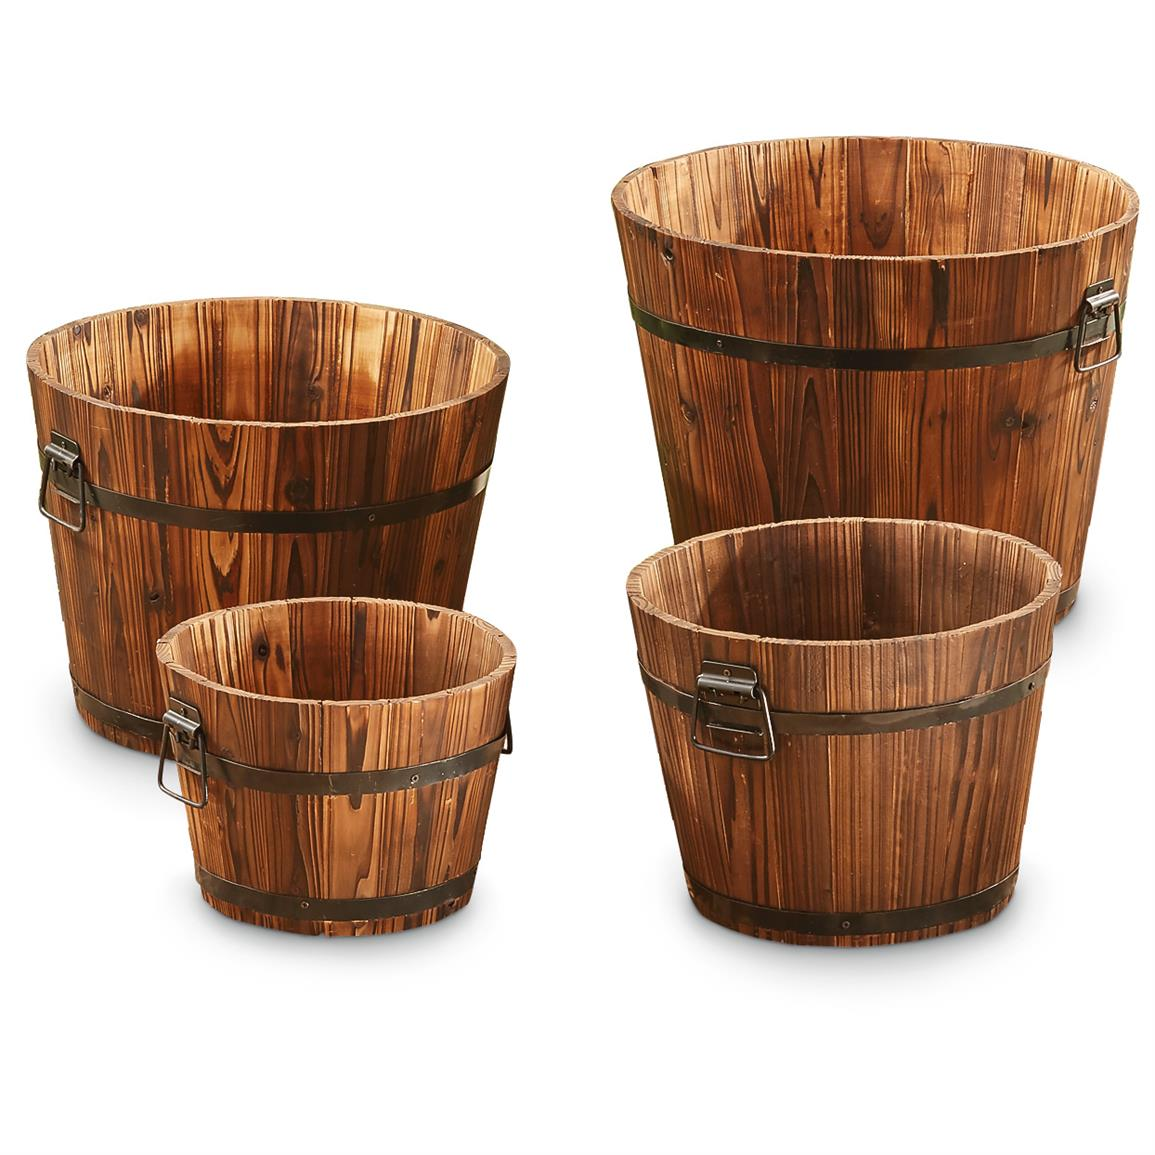 4-Pc. CASTLECREEK Wooden Barrel Planter Set